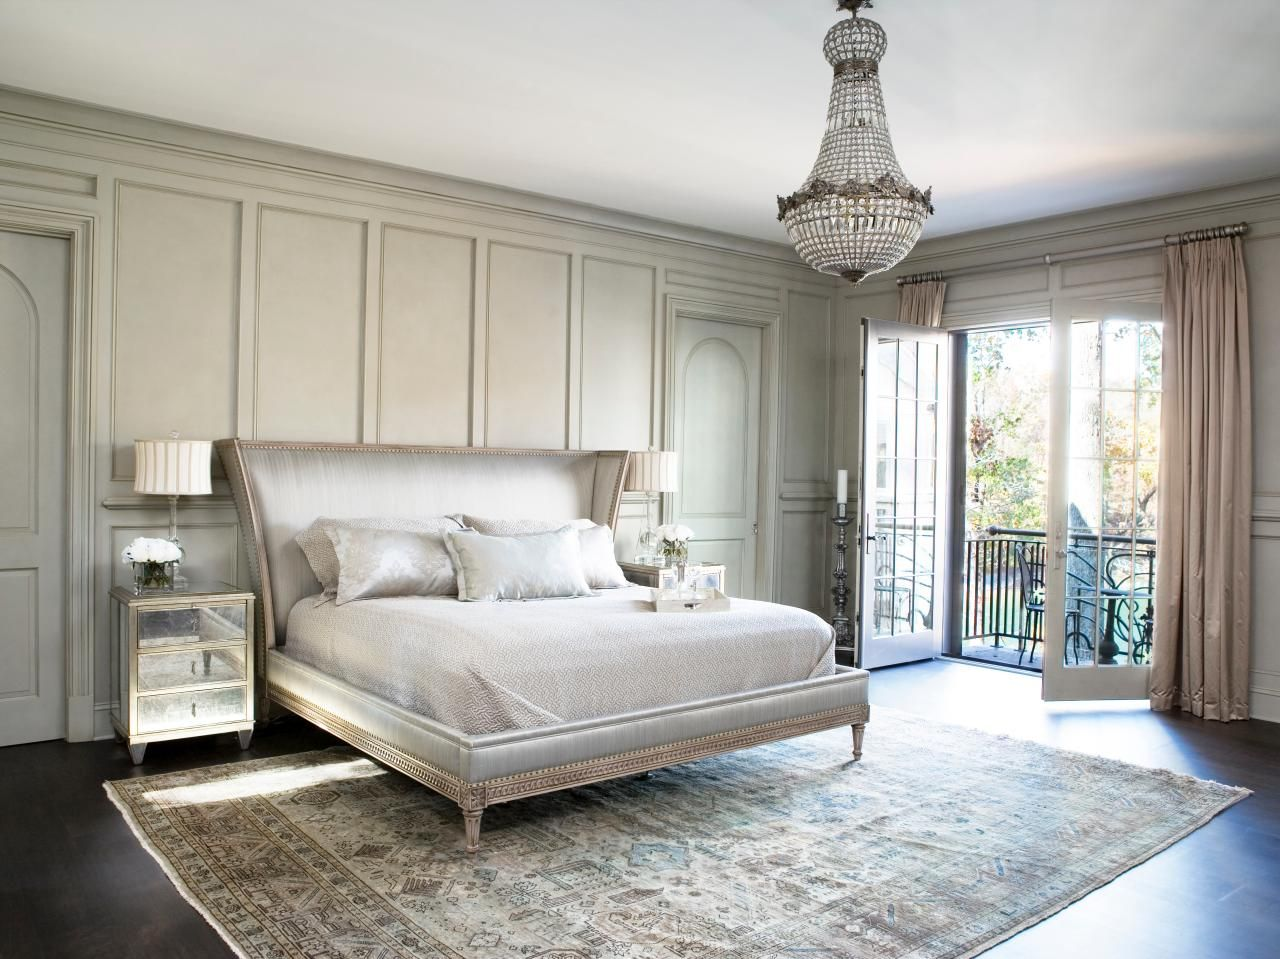 a very elegant Parisian bedroom with a printed rug, a chic upholstered bed, a crystal chandelier and mirror nightstands